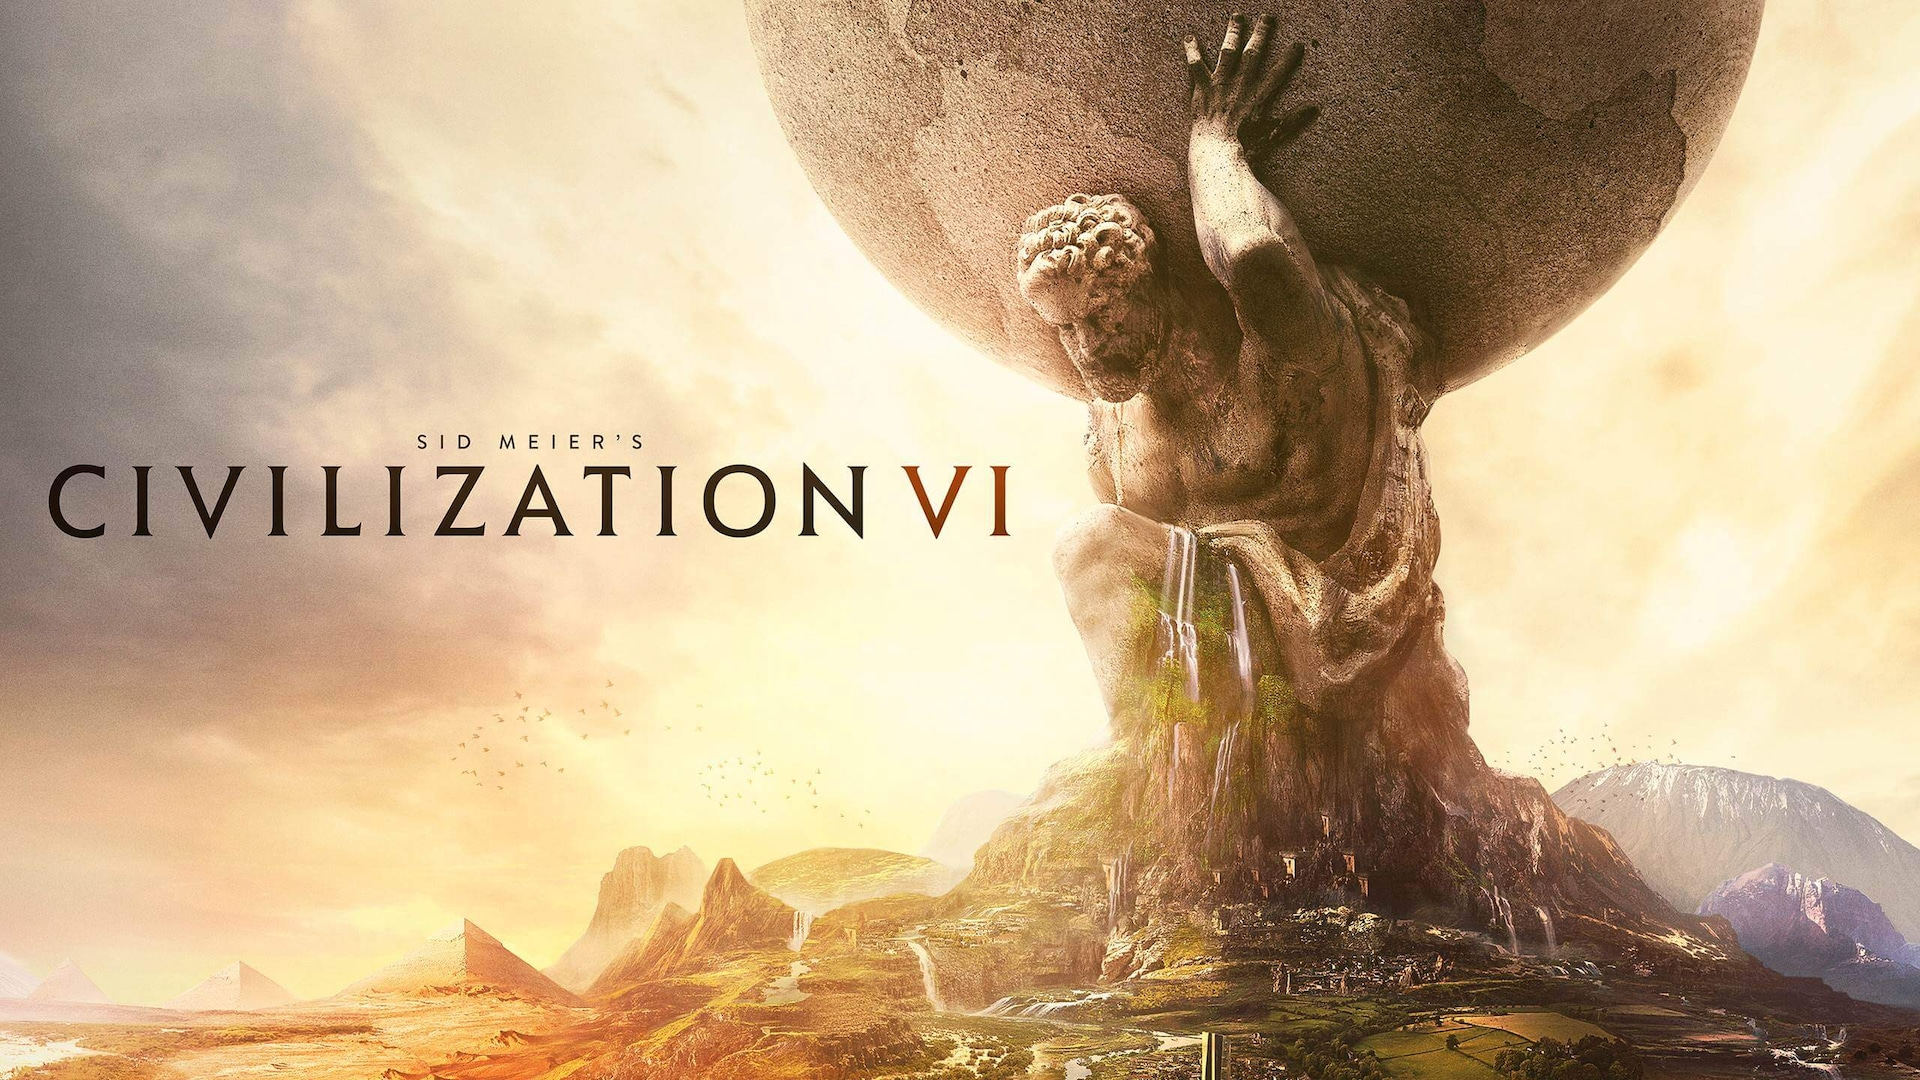 Civilization VI on the Epic Games Store